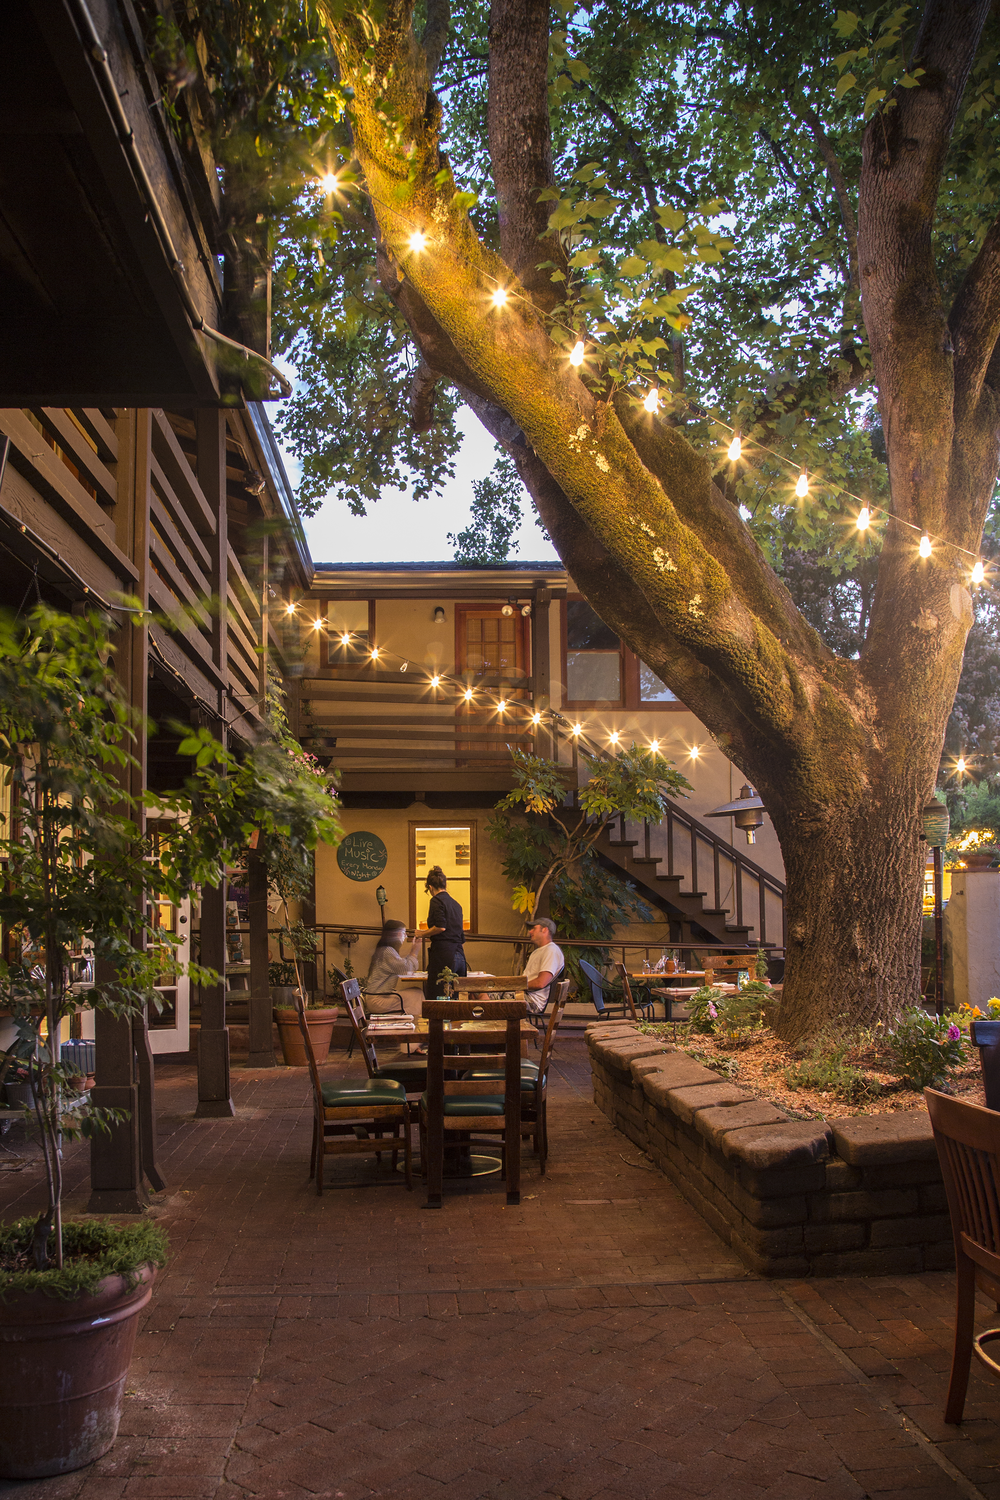 backyard_forestville_sonoma_county_restaurant_72_8523.png